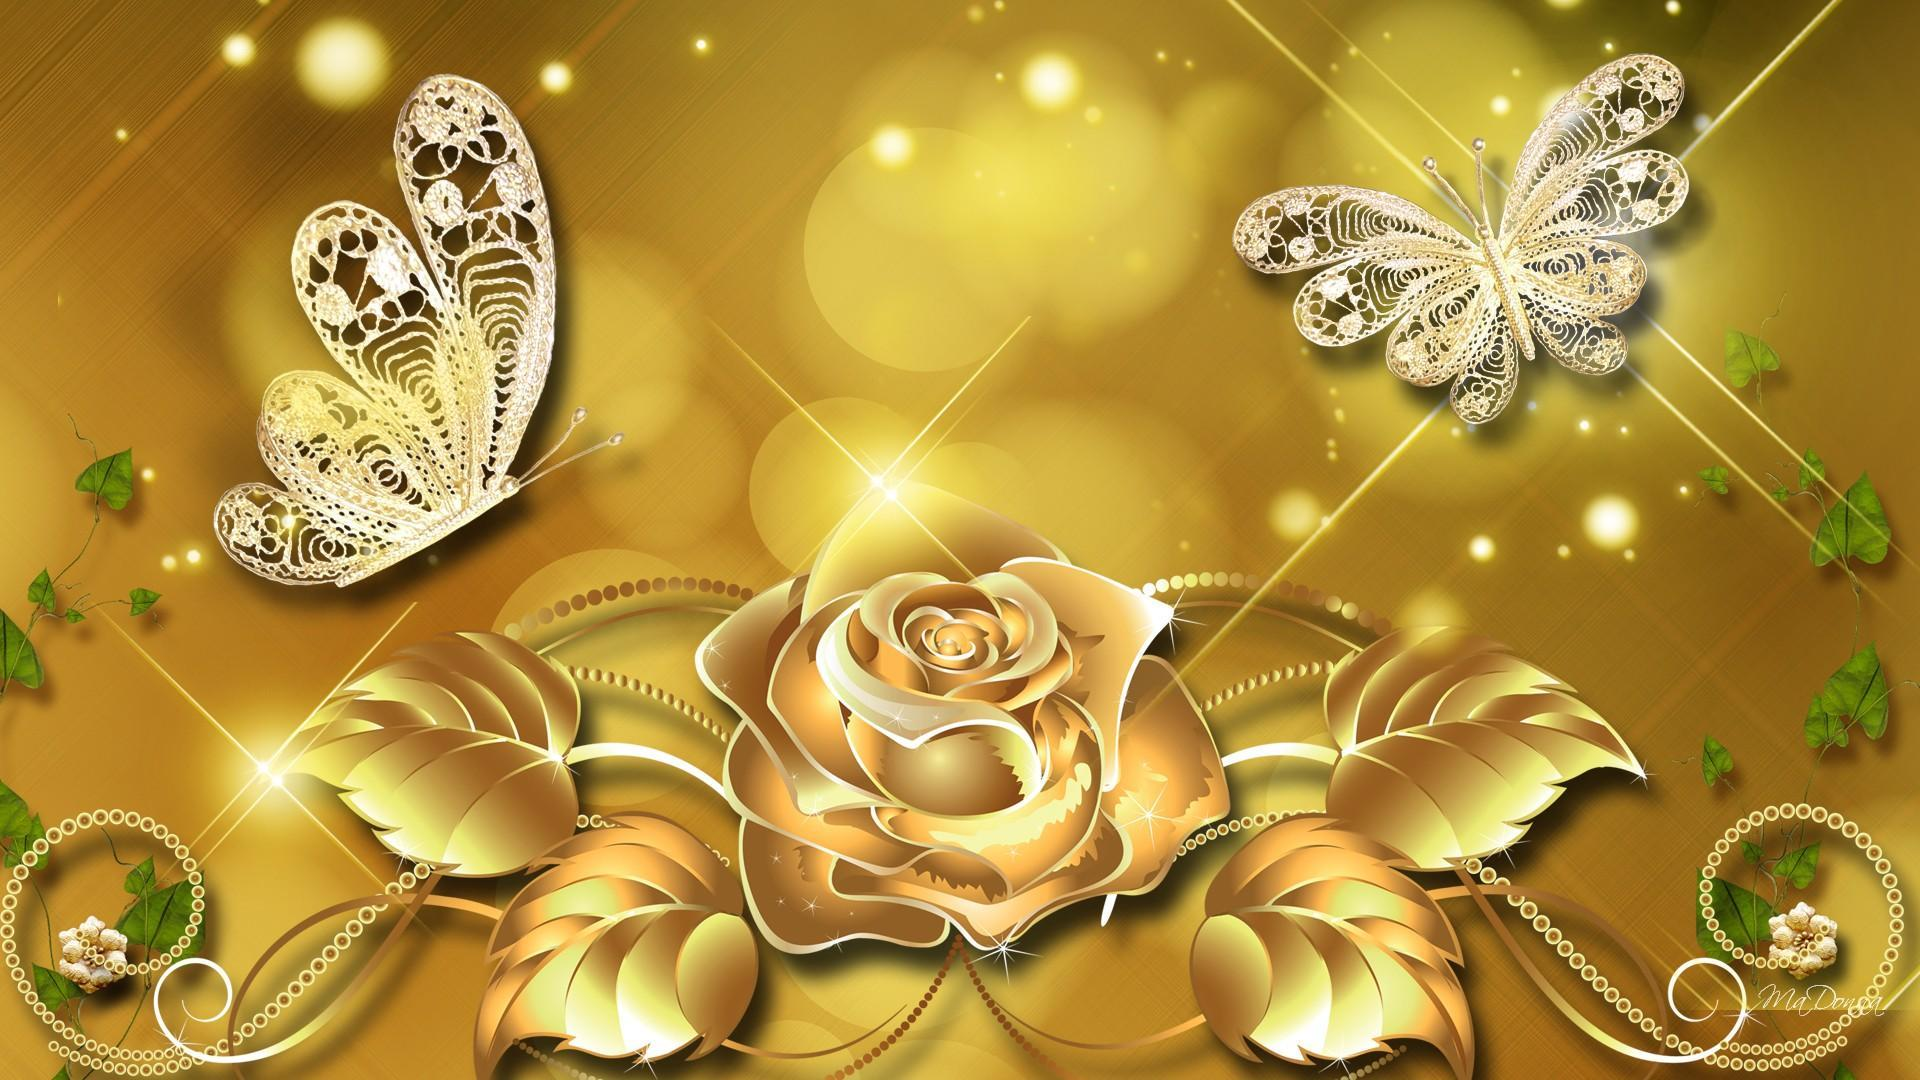 1920x1080 Background Emas Gold - Gold Flower, Hd Wallpapers ...